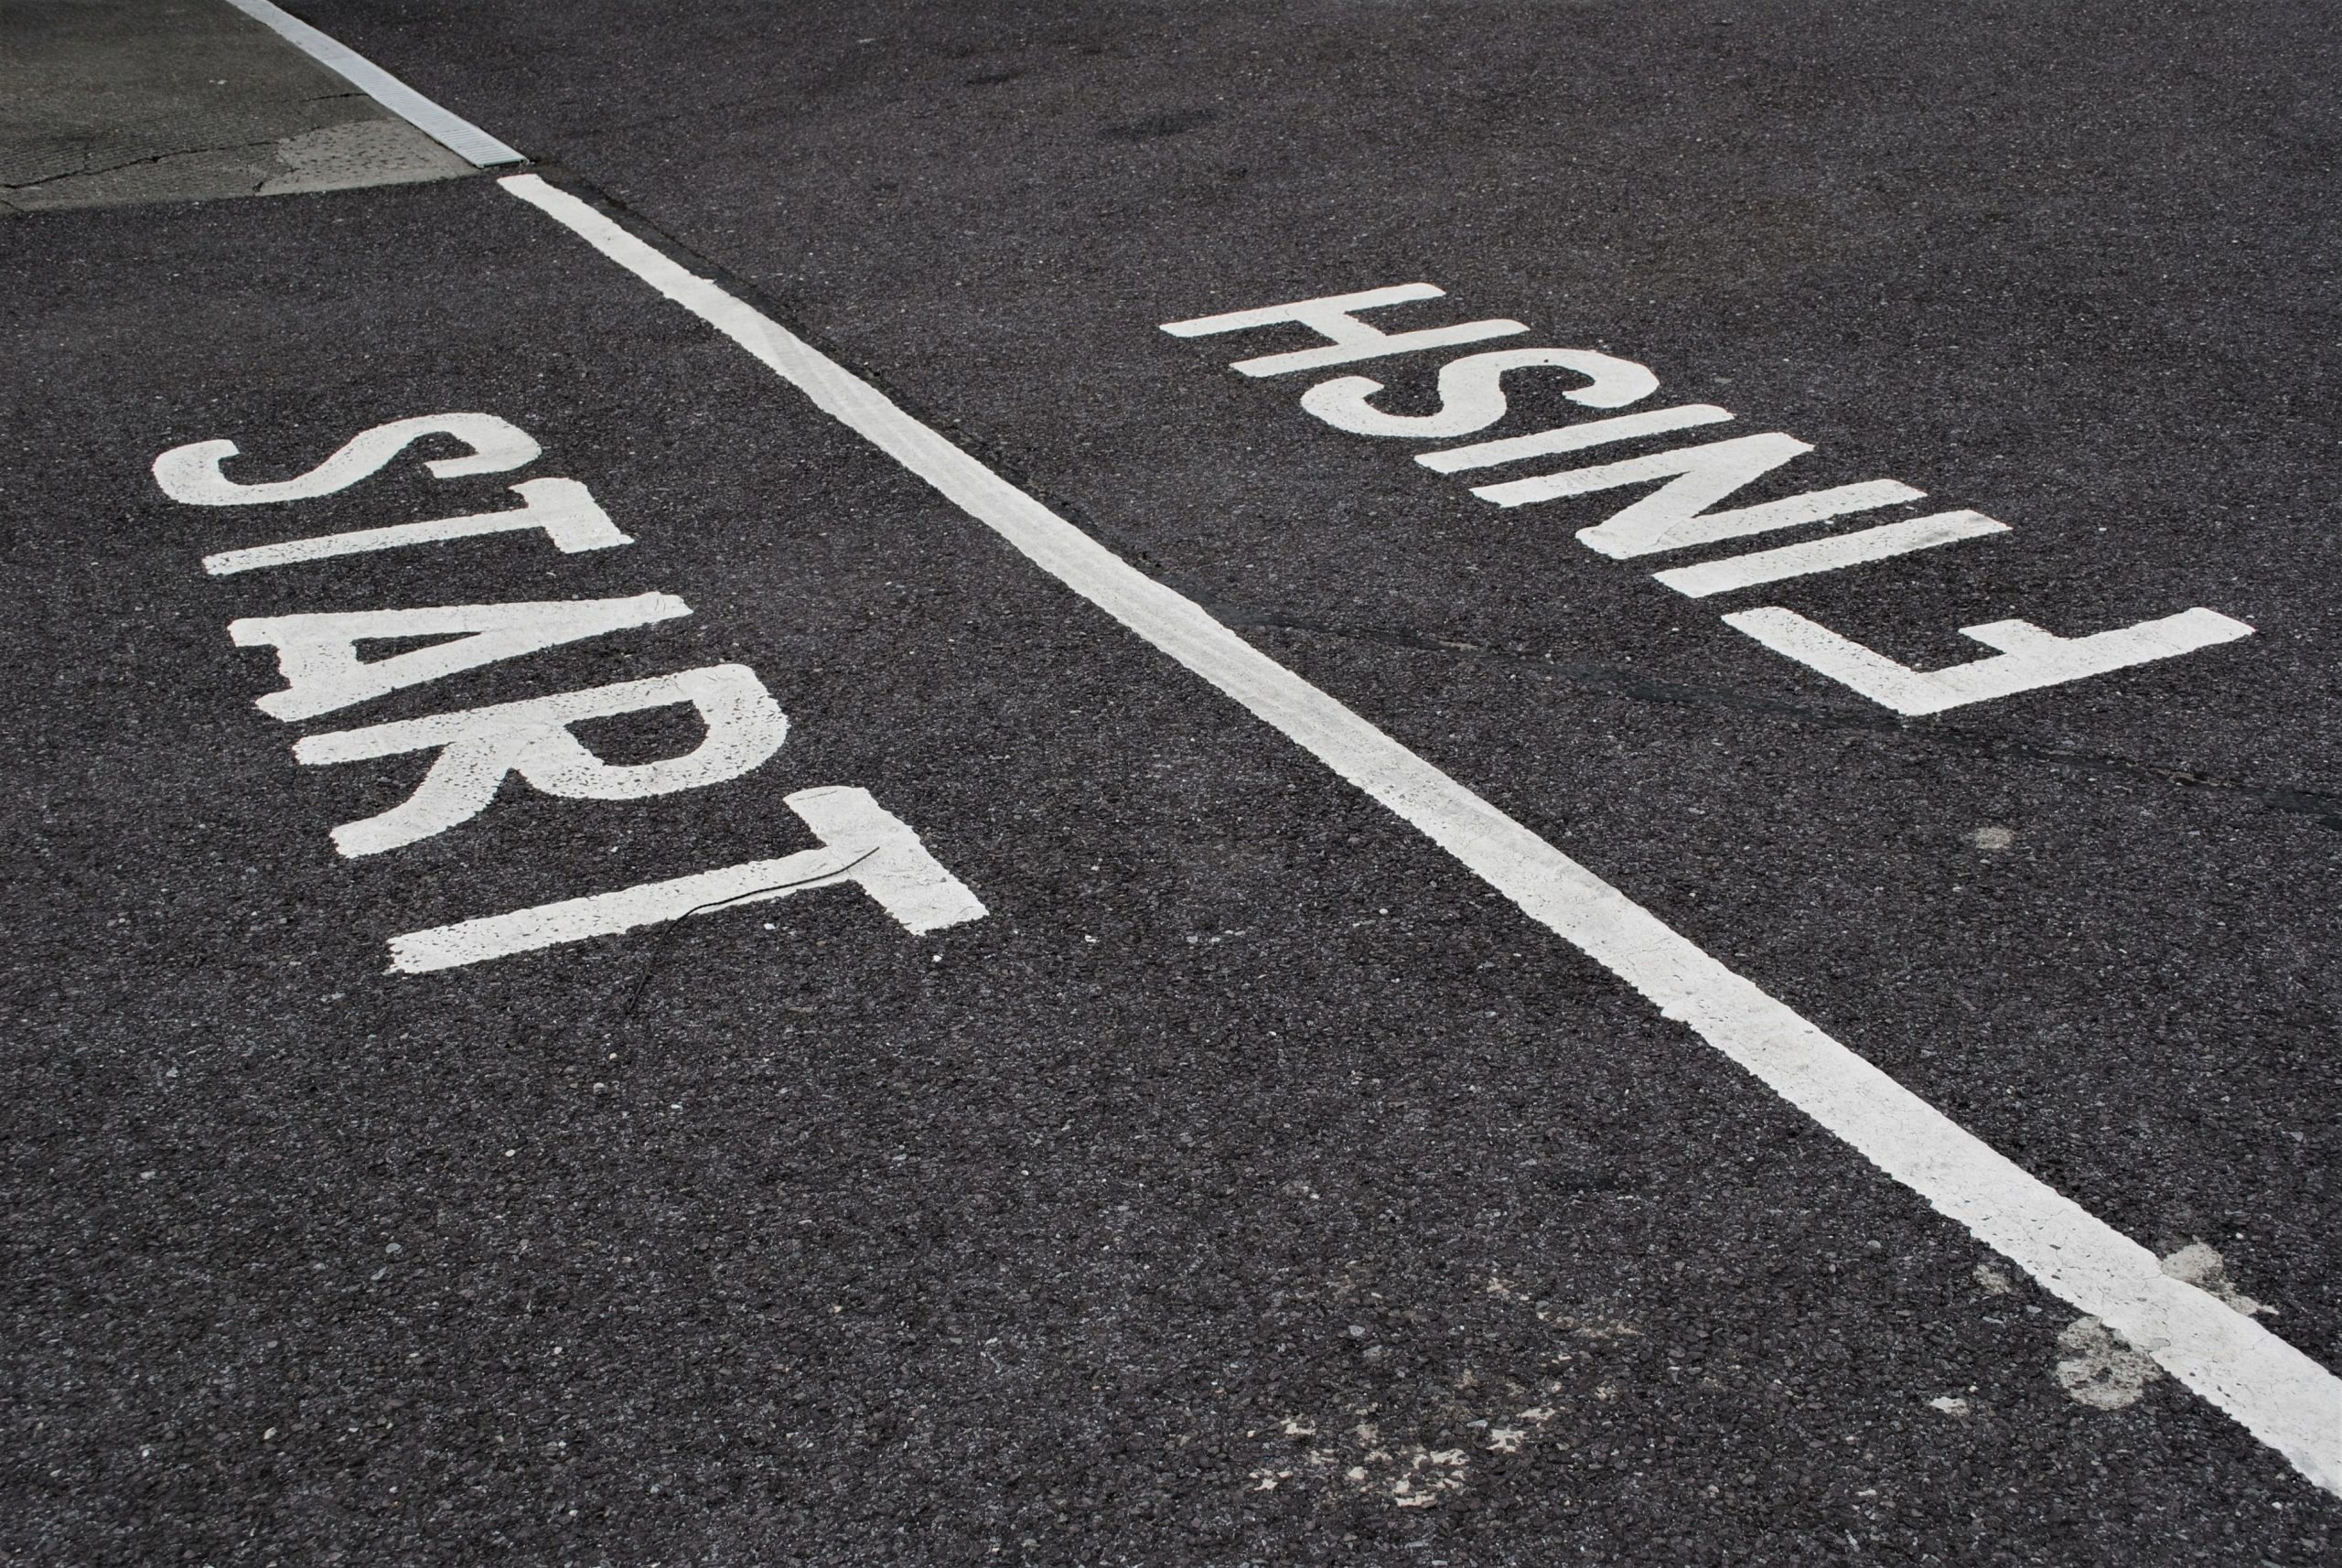 White painted start and finish lines on black tarmac